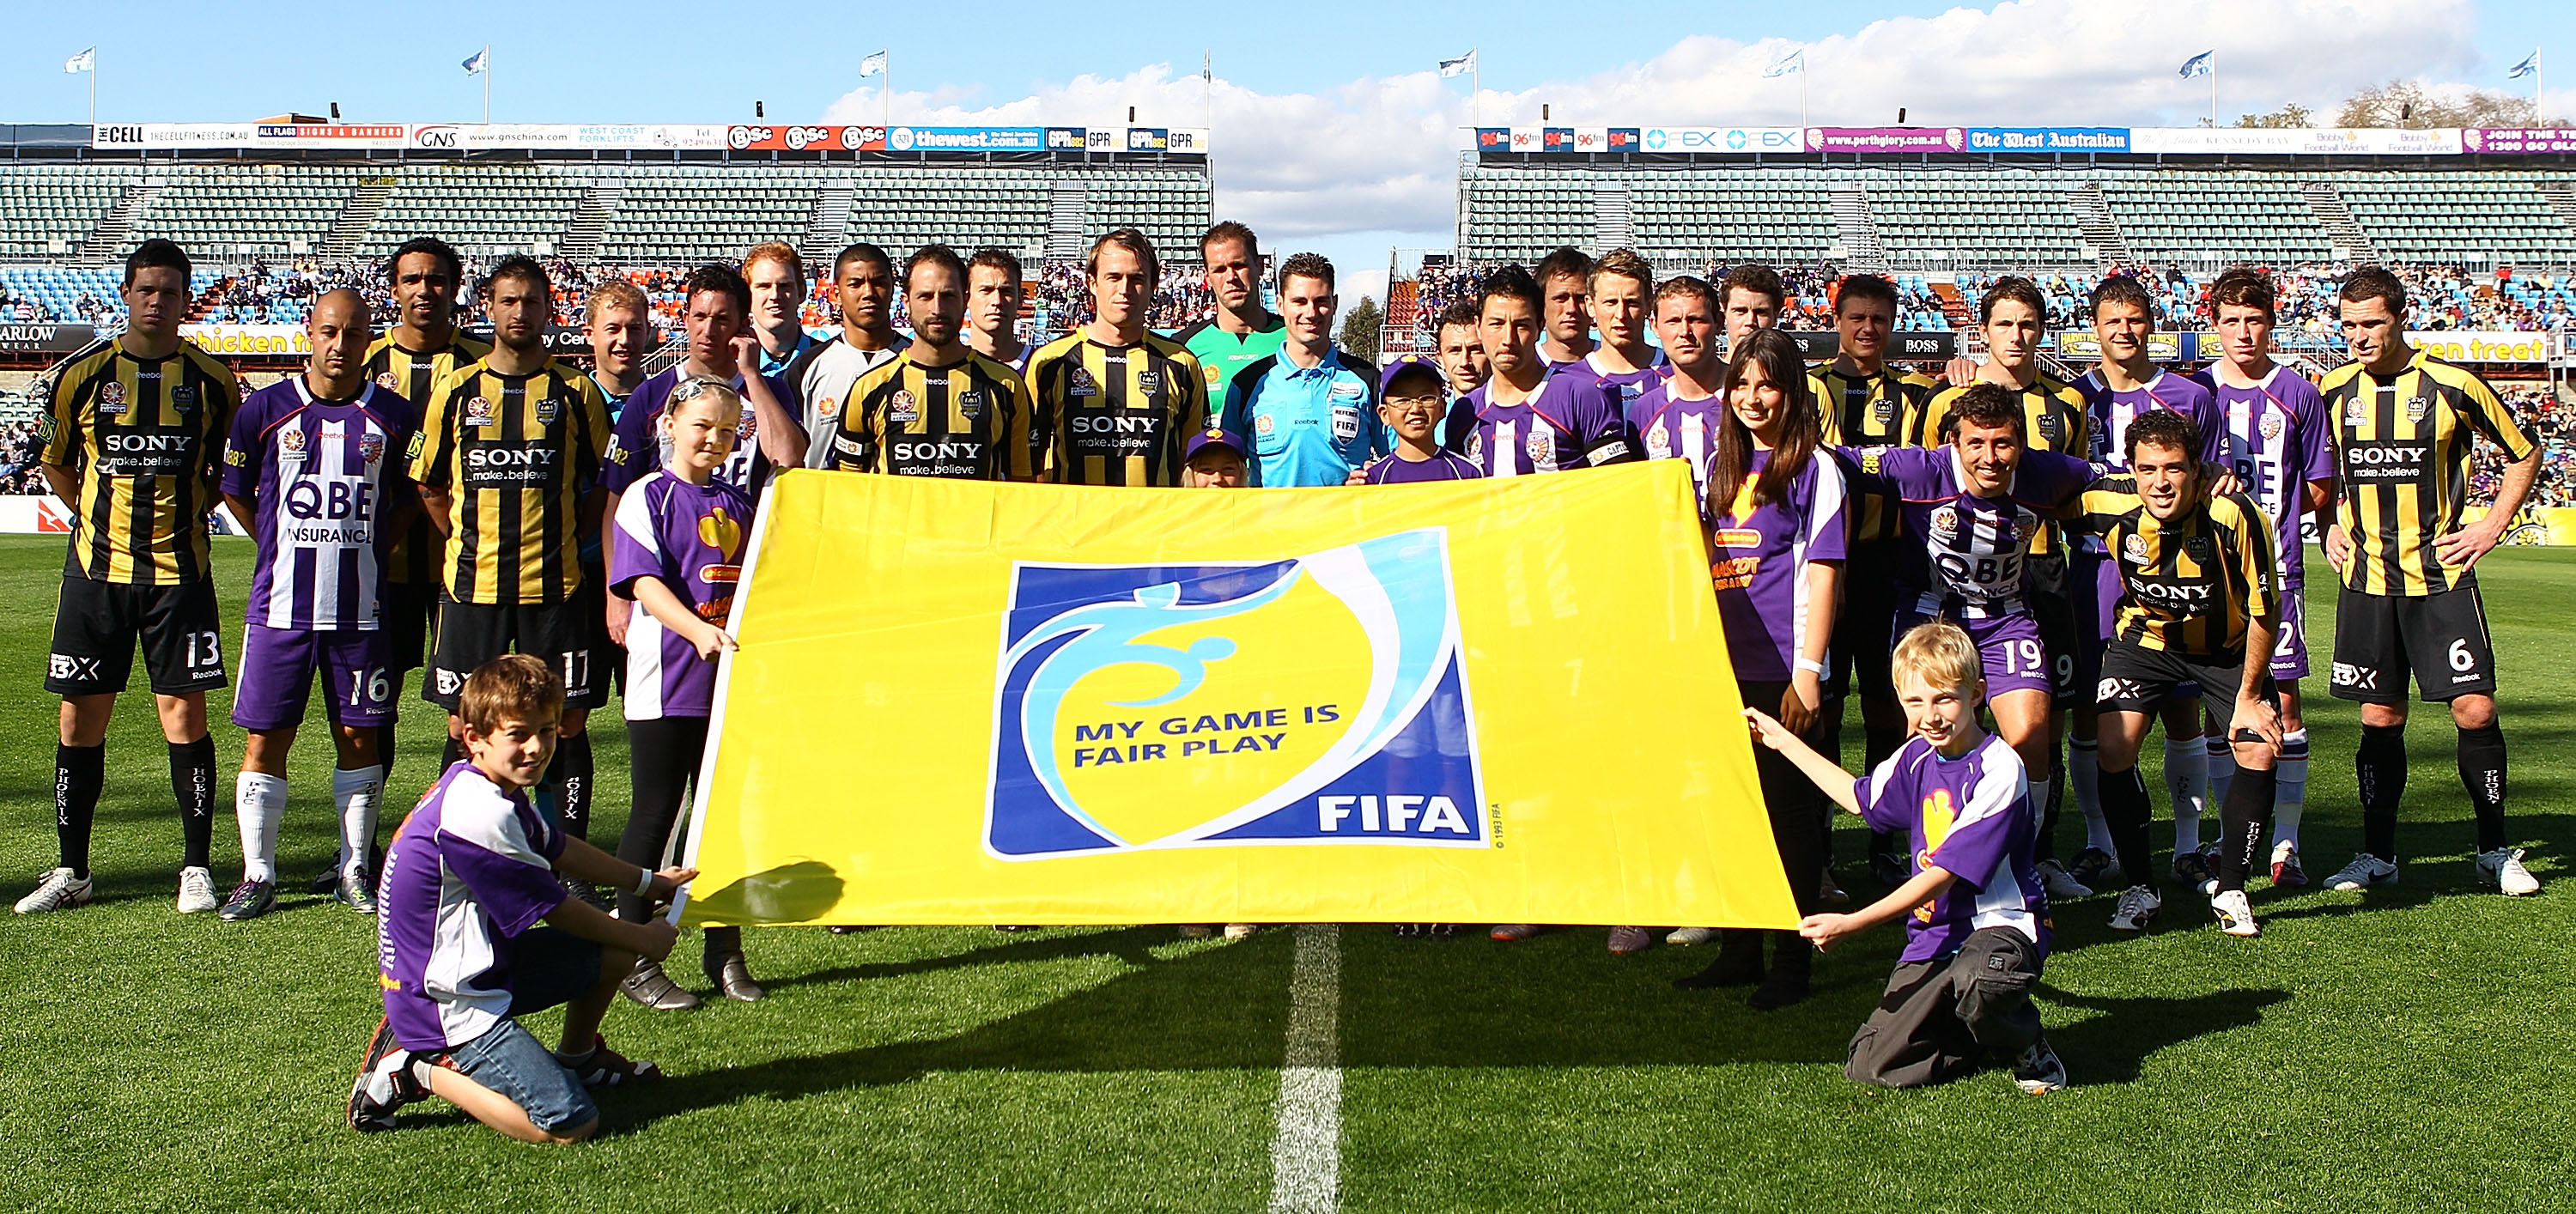 PERTH, AUSTRALIA - SEPTEMBER 05:  Players and officials pose to promote FIFA Fair Play during the round five A-League match between the Perth Glory and the Wellington Phoenix at nib Stadium on September 5, 2010 in Perth, Australia.  (Photo by Paul Kane/Ge